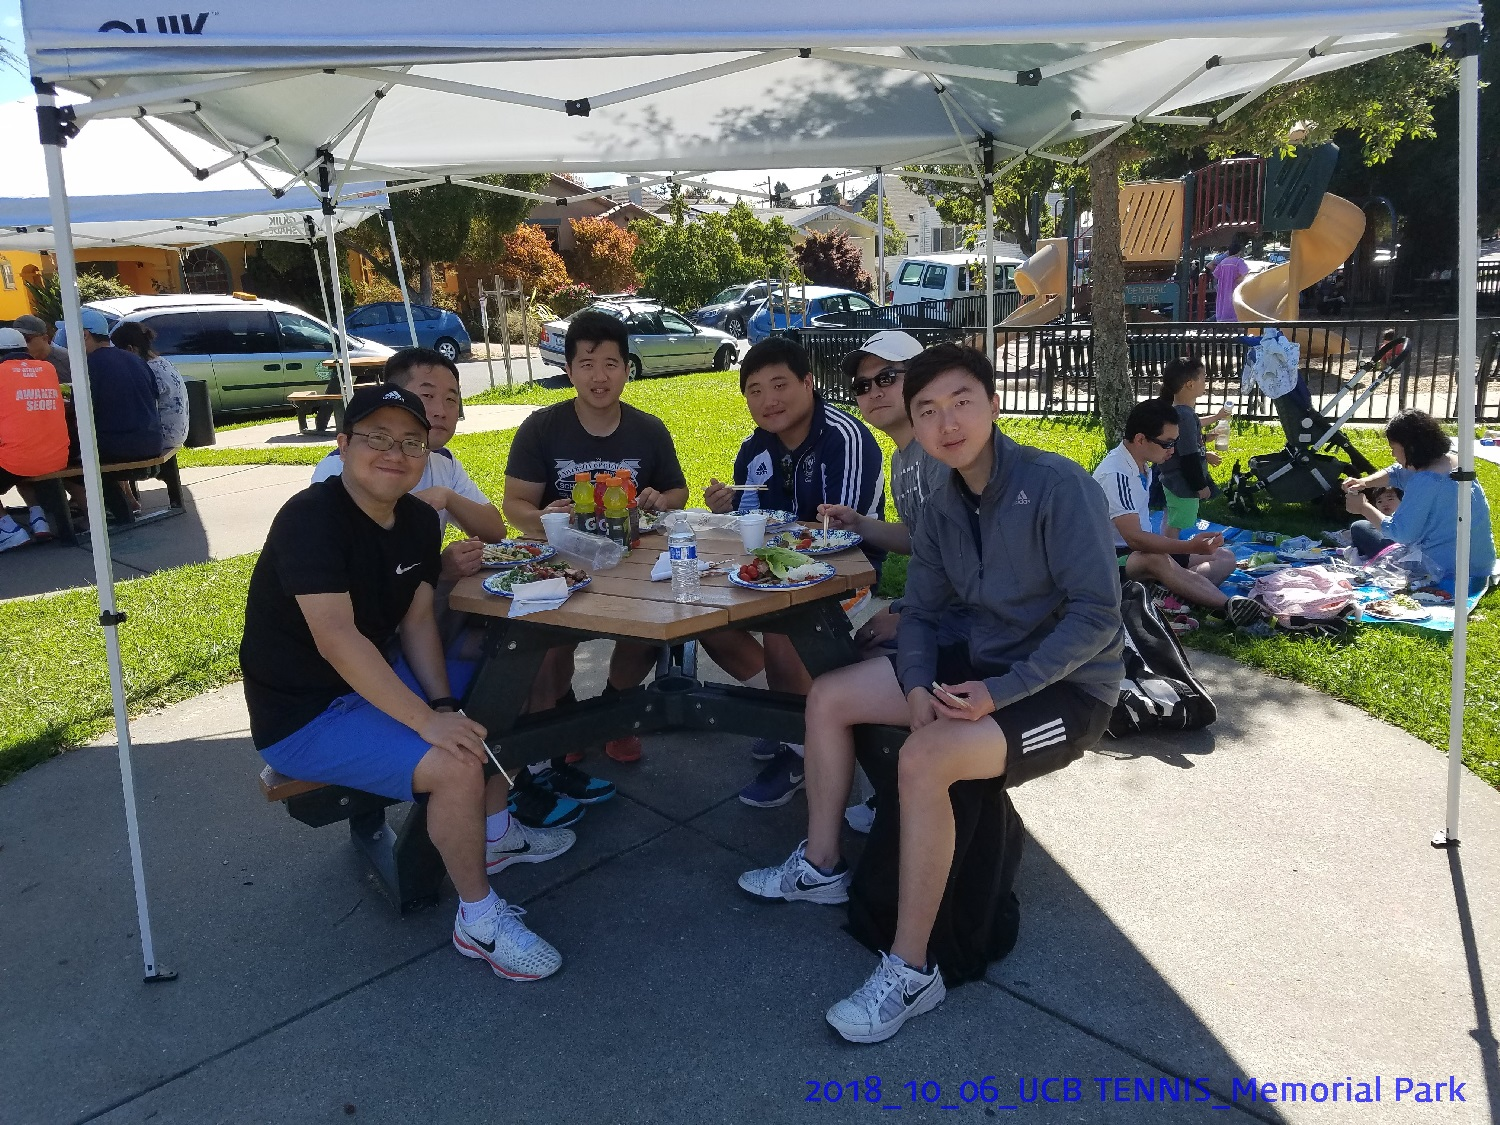 resized_2018_10_06_UCB Tennis at Memorial Park_120905.jpg